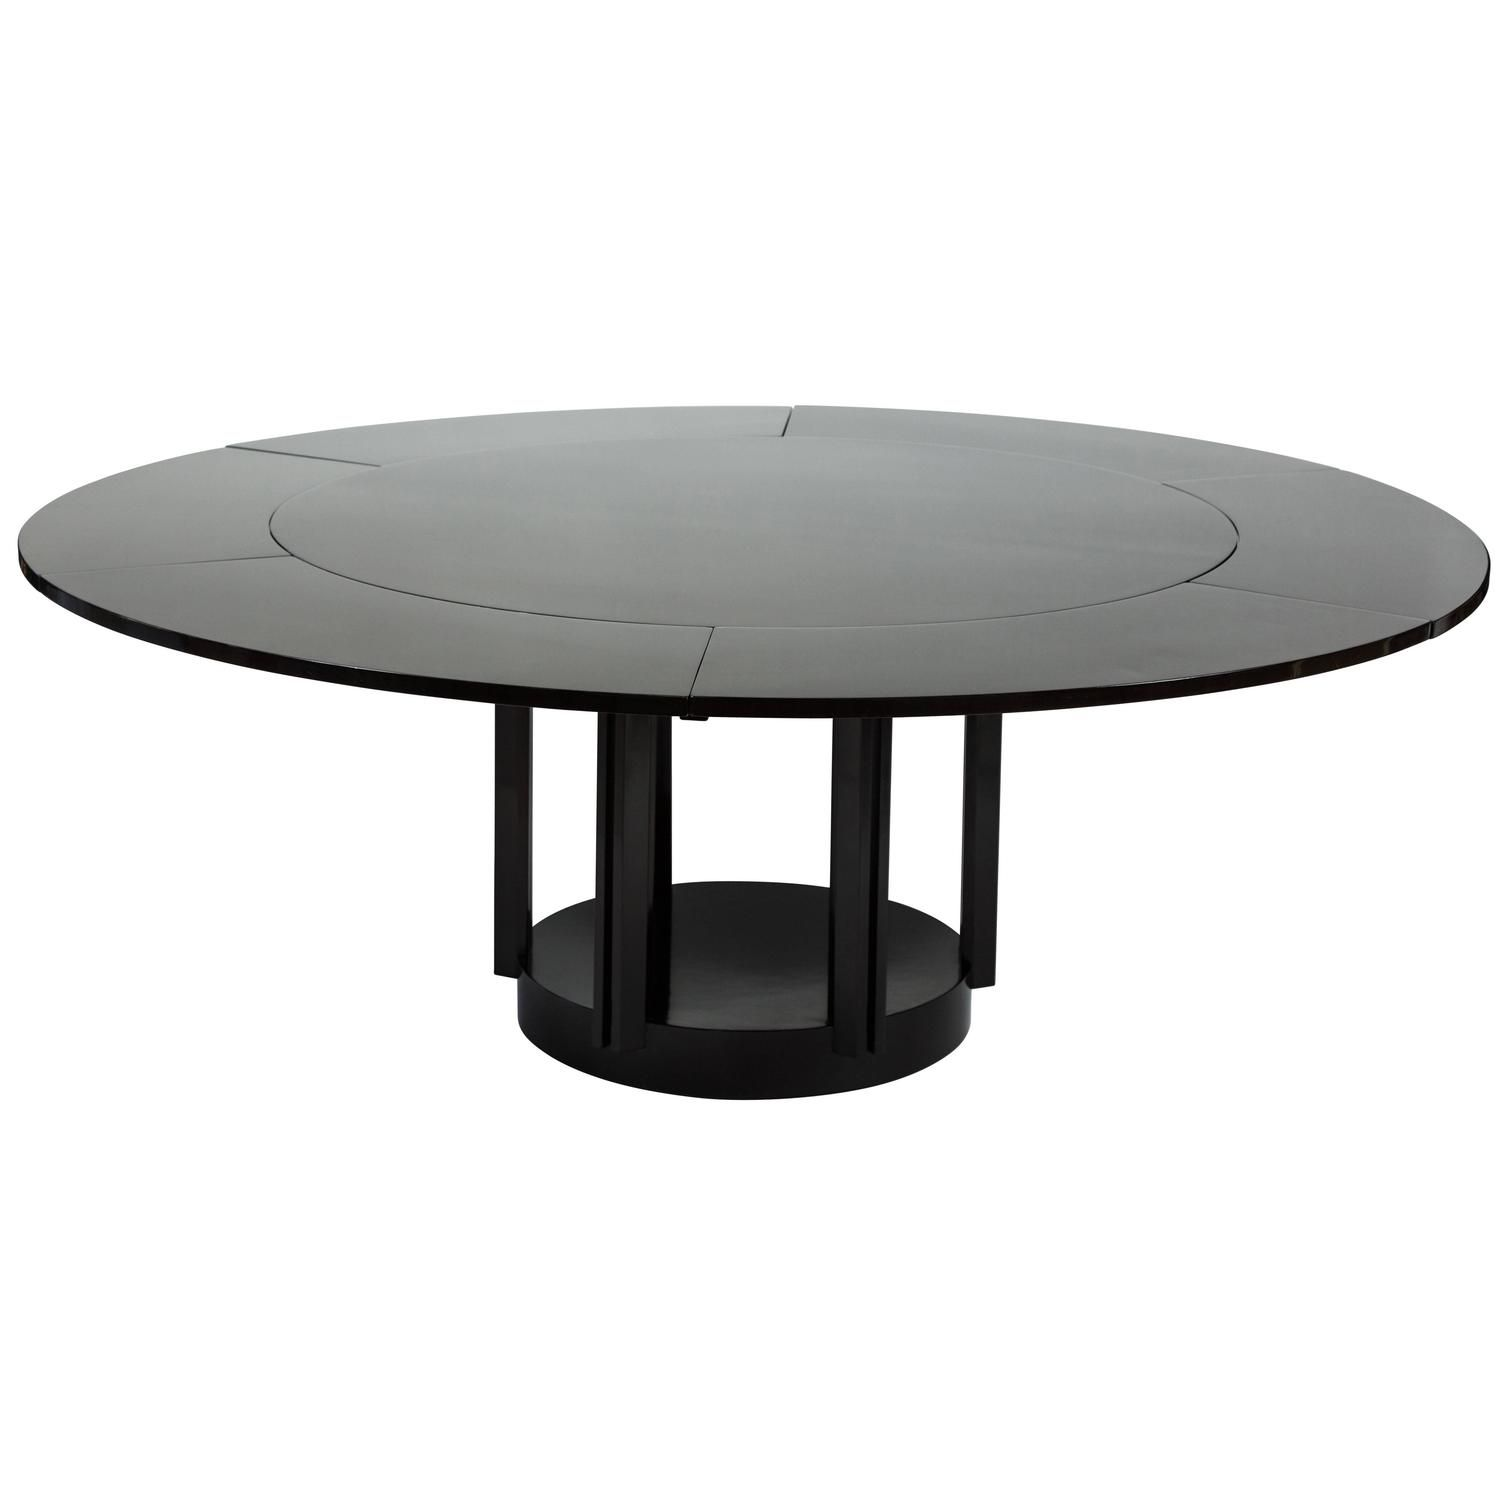 Fantastic Modern Round Dining Table By Eliel Saarinen For Johnson